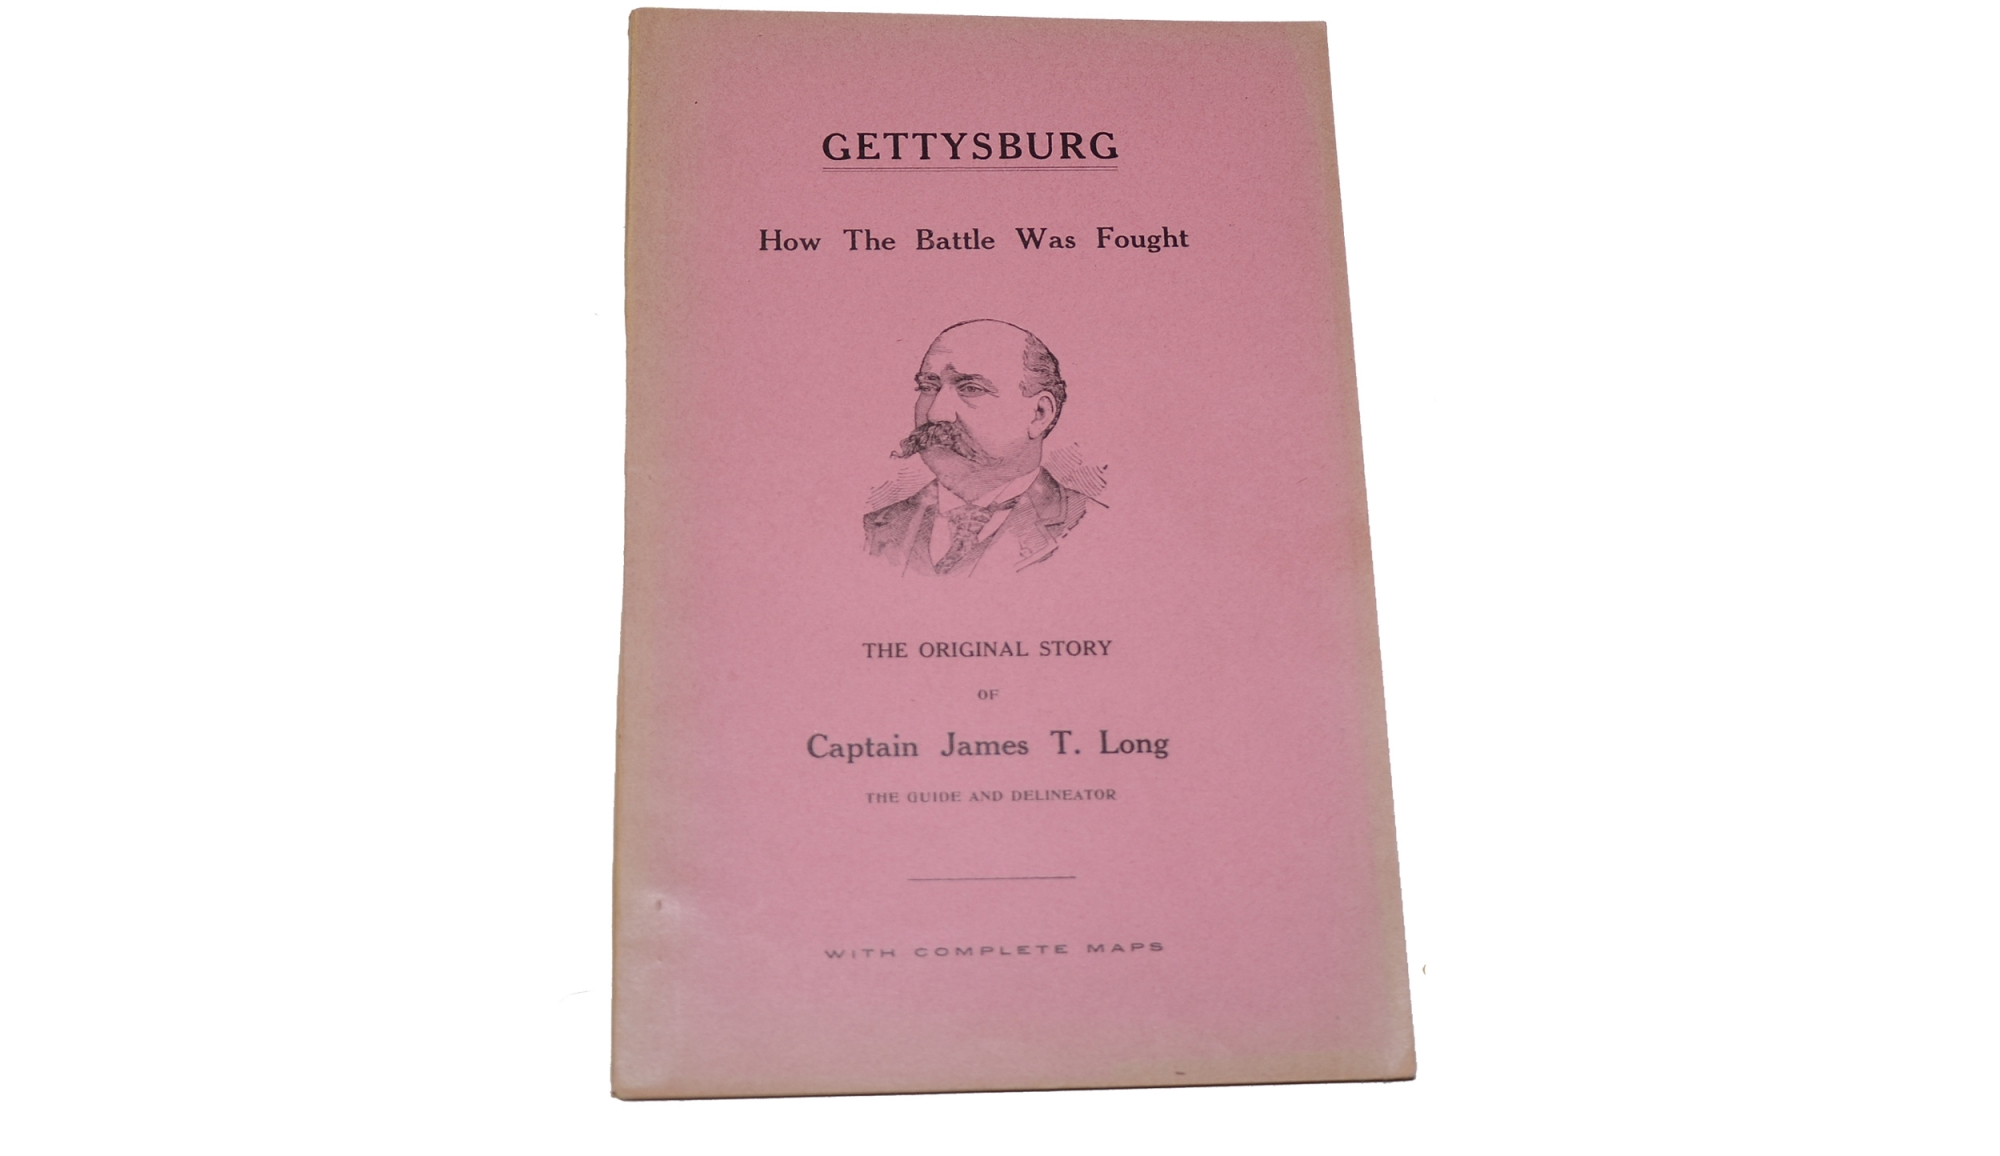 "BOOK TITLED ""GETTYSBURG: HOW THE BATTLE WAS FOUGHT"" BY CAPTAIN JAMES T. LONG"